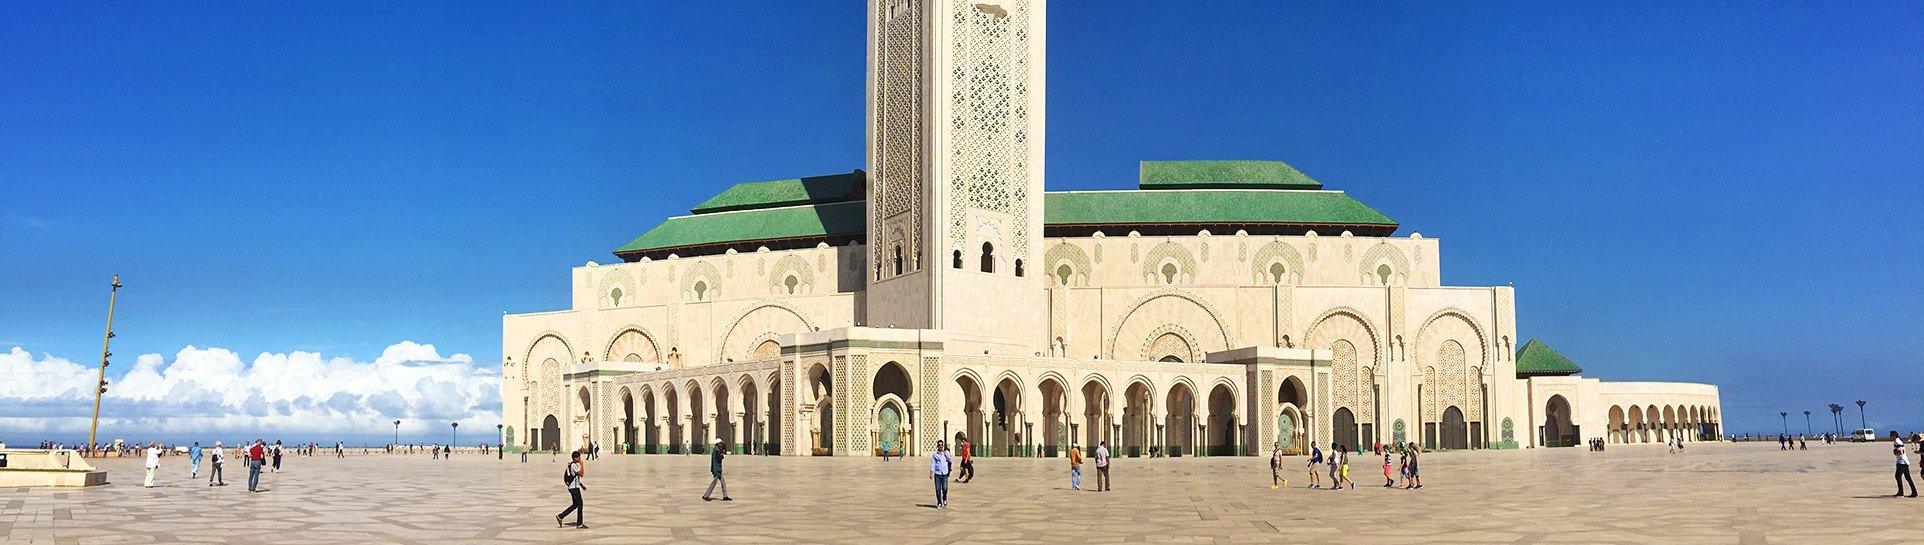 Hassan II Mosque - the second largest religious building in the world